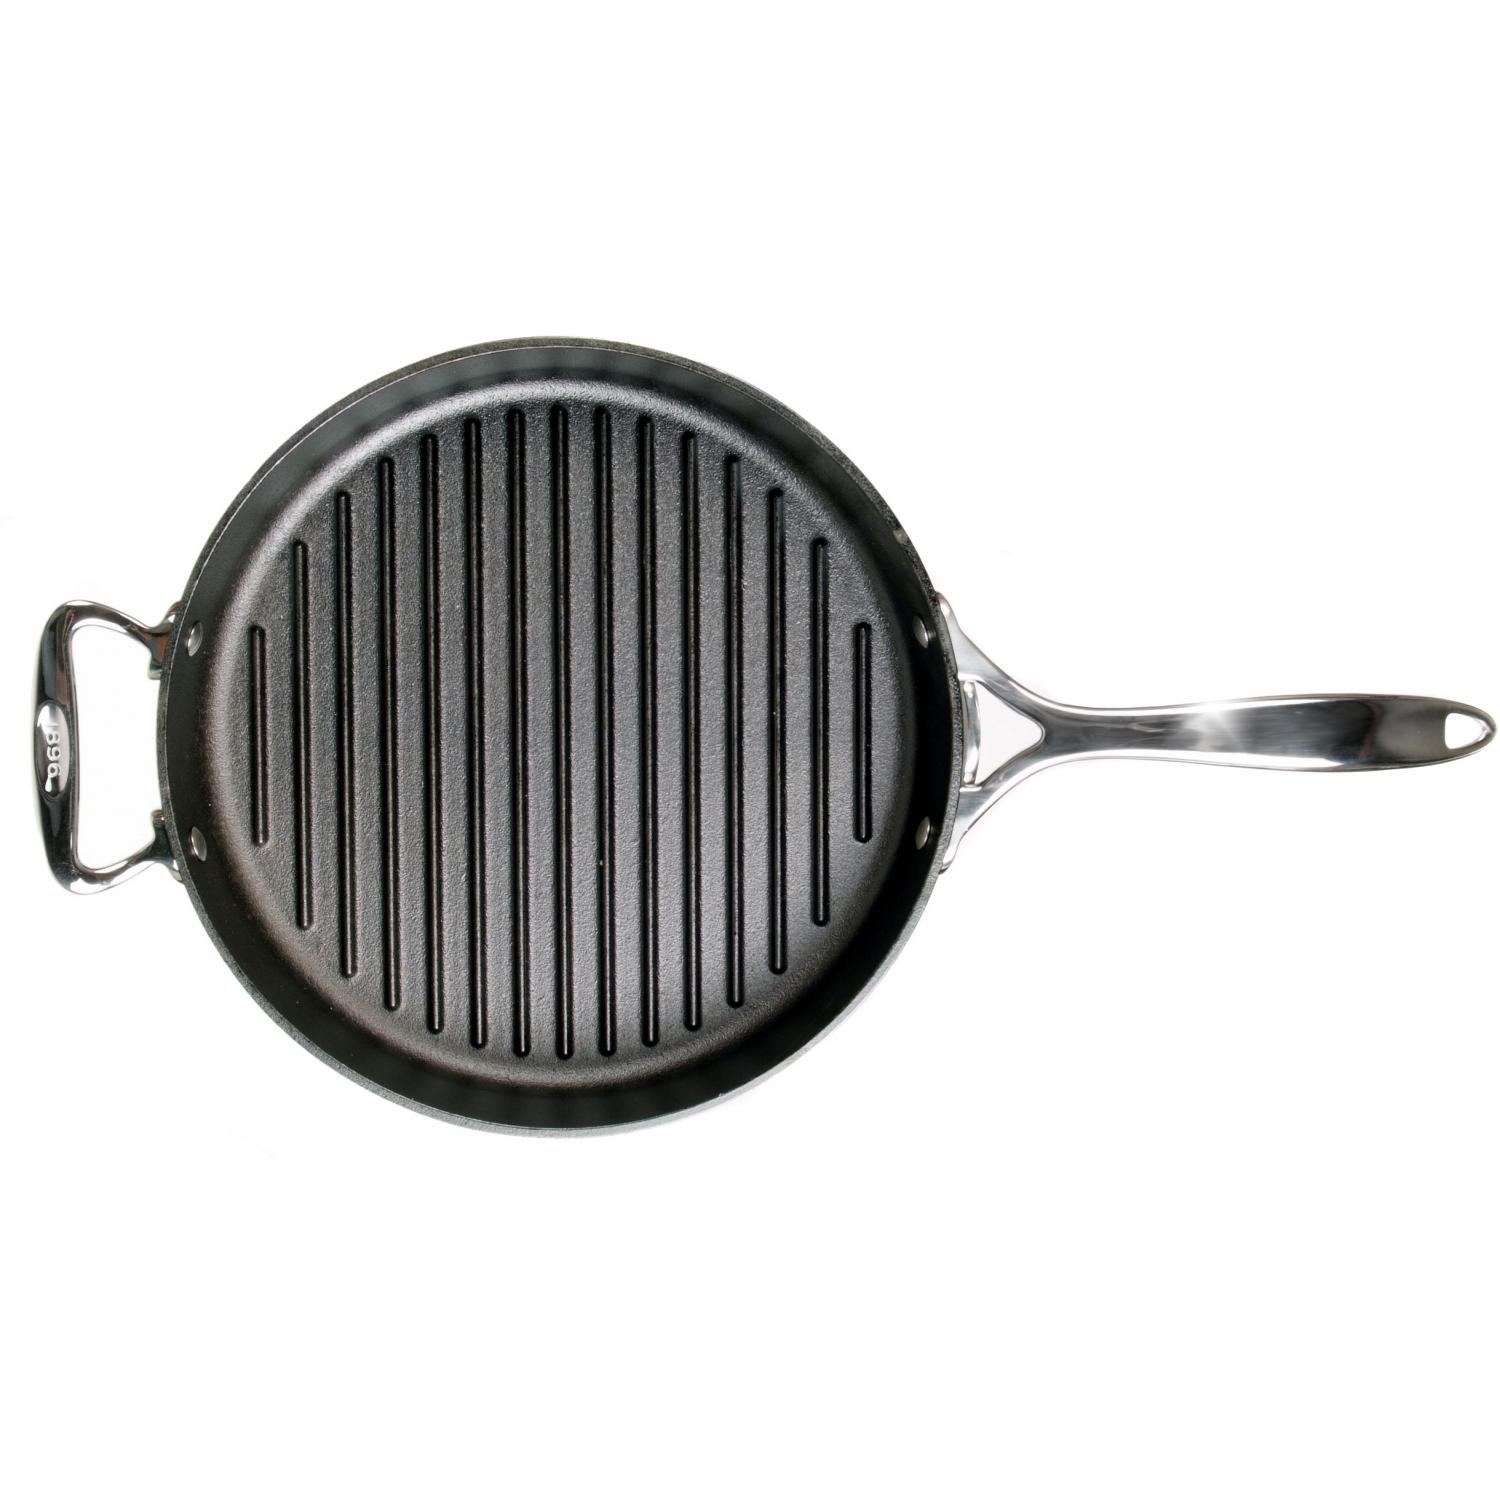 Lodge Pans 12 Inch Seasoned Signature Series Cast Iron Grill Pan - SS12GR